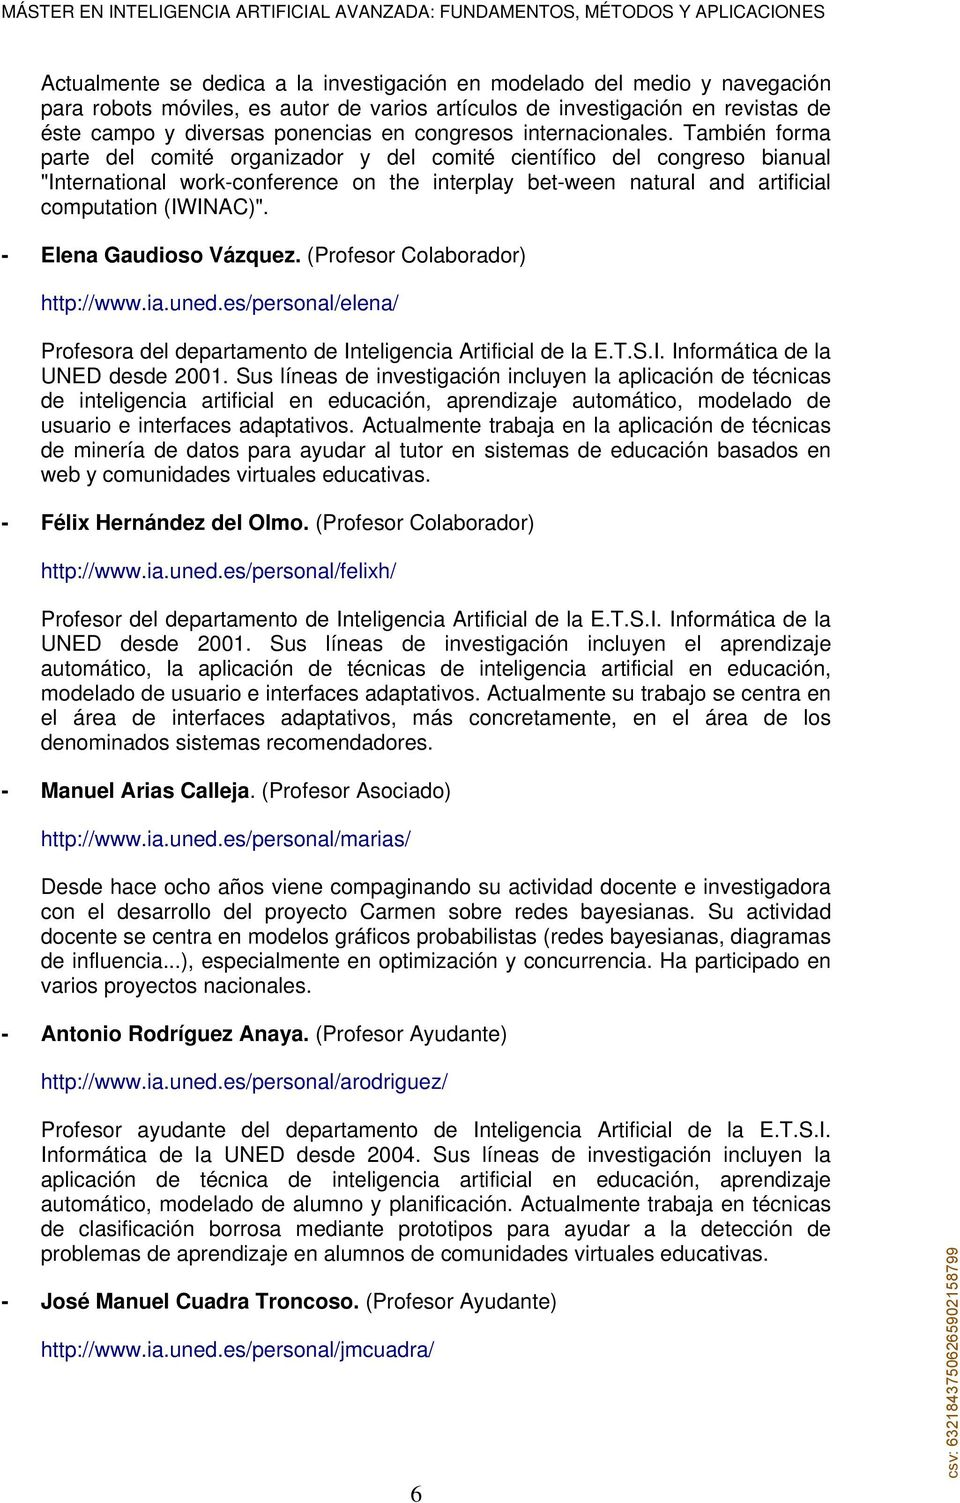 "También forma parte del comité organizador y del comité científico del congreso bianual ""International work-conference on the interplay bet-ween natural and artificial computation (IWINAC)""."